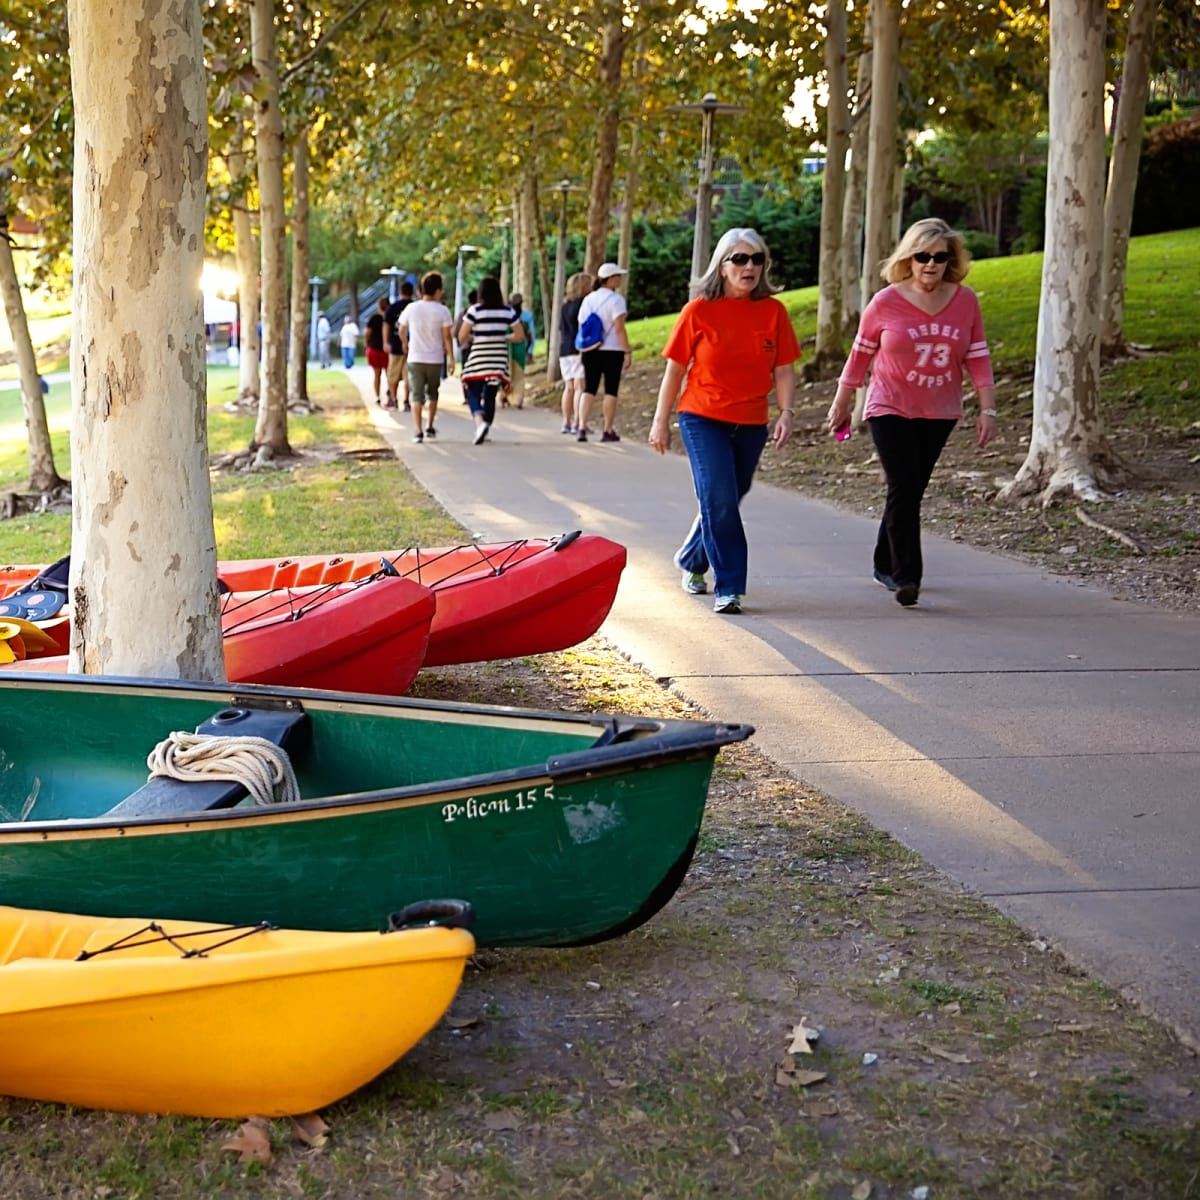 News, Shelby, Buffalo Bayou Park opening, Oct. 2015, canoes